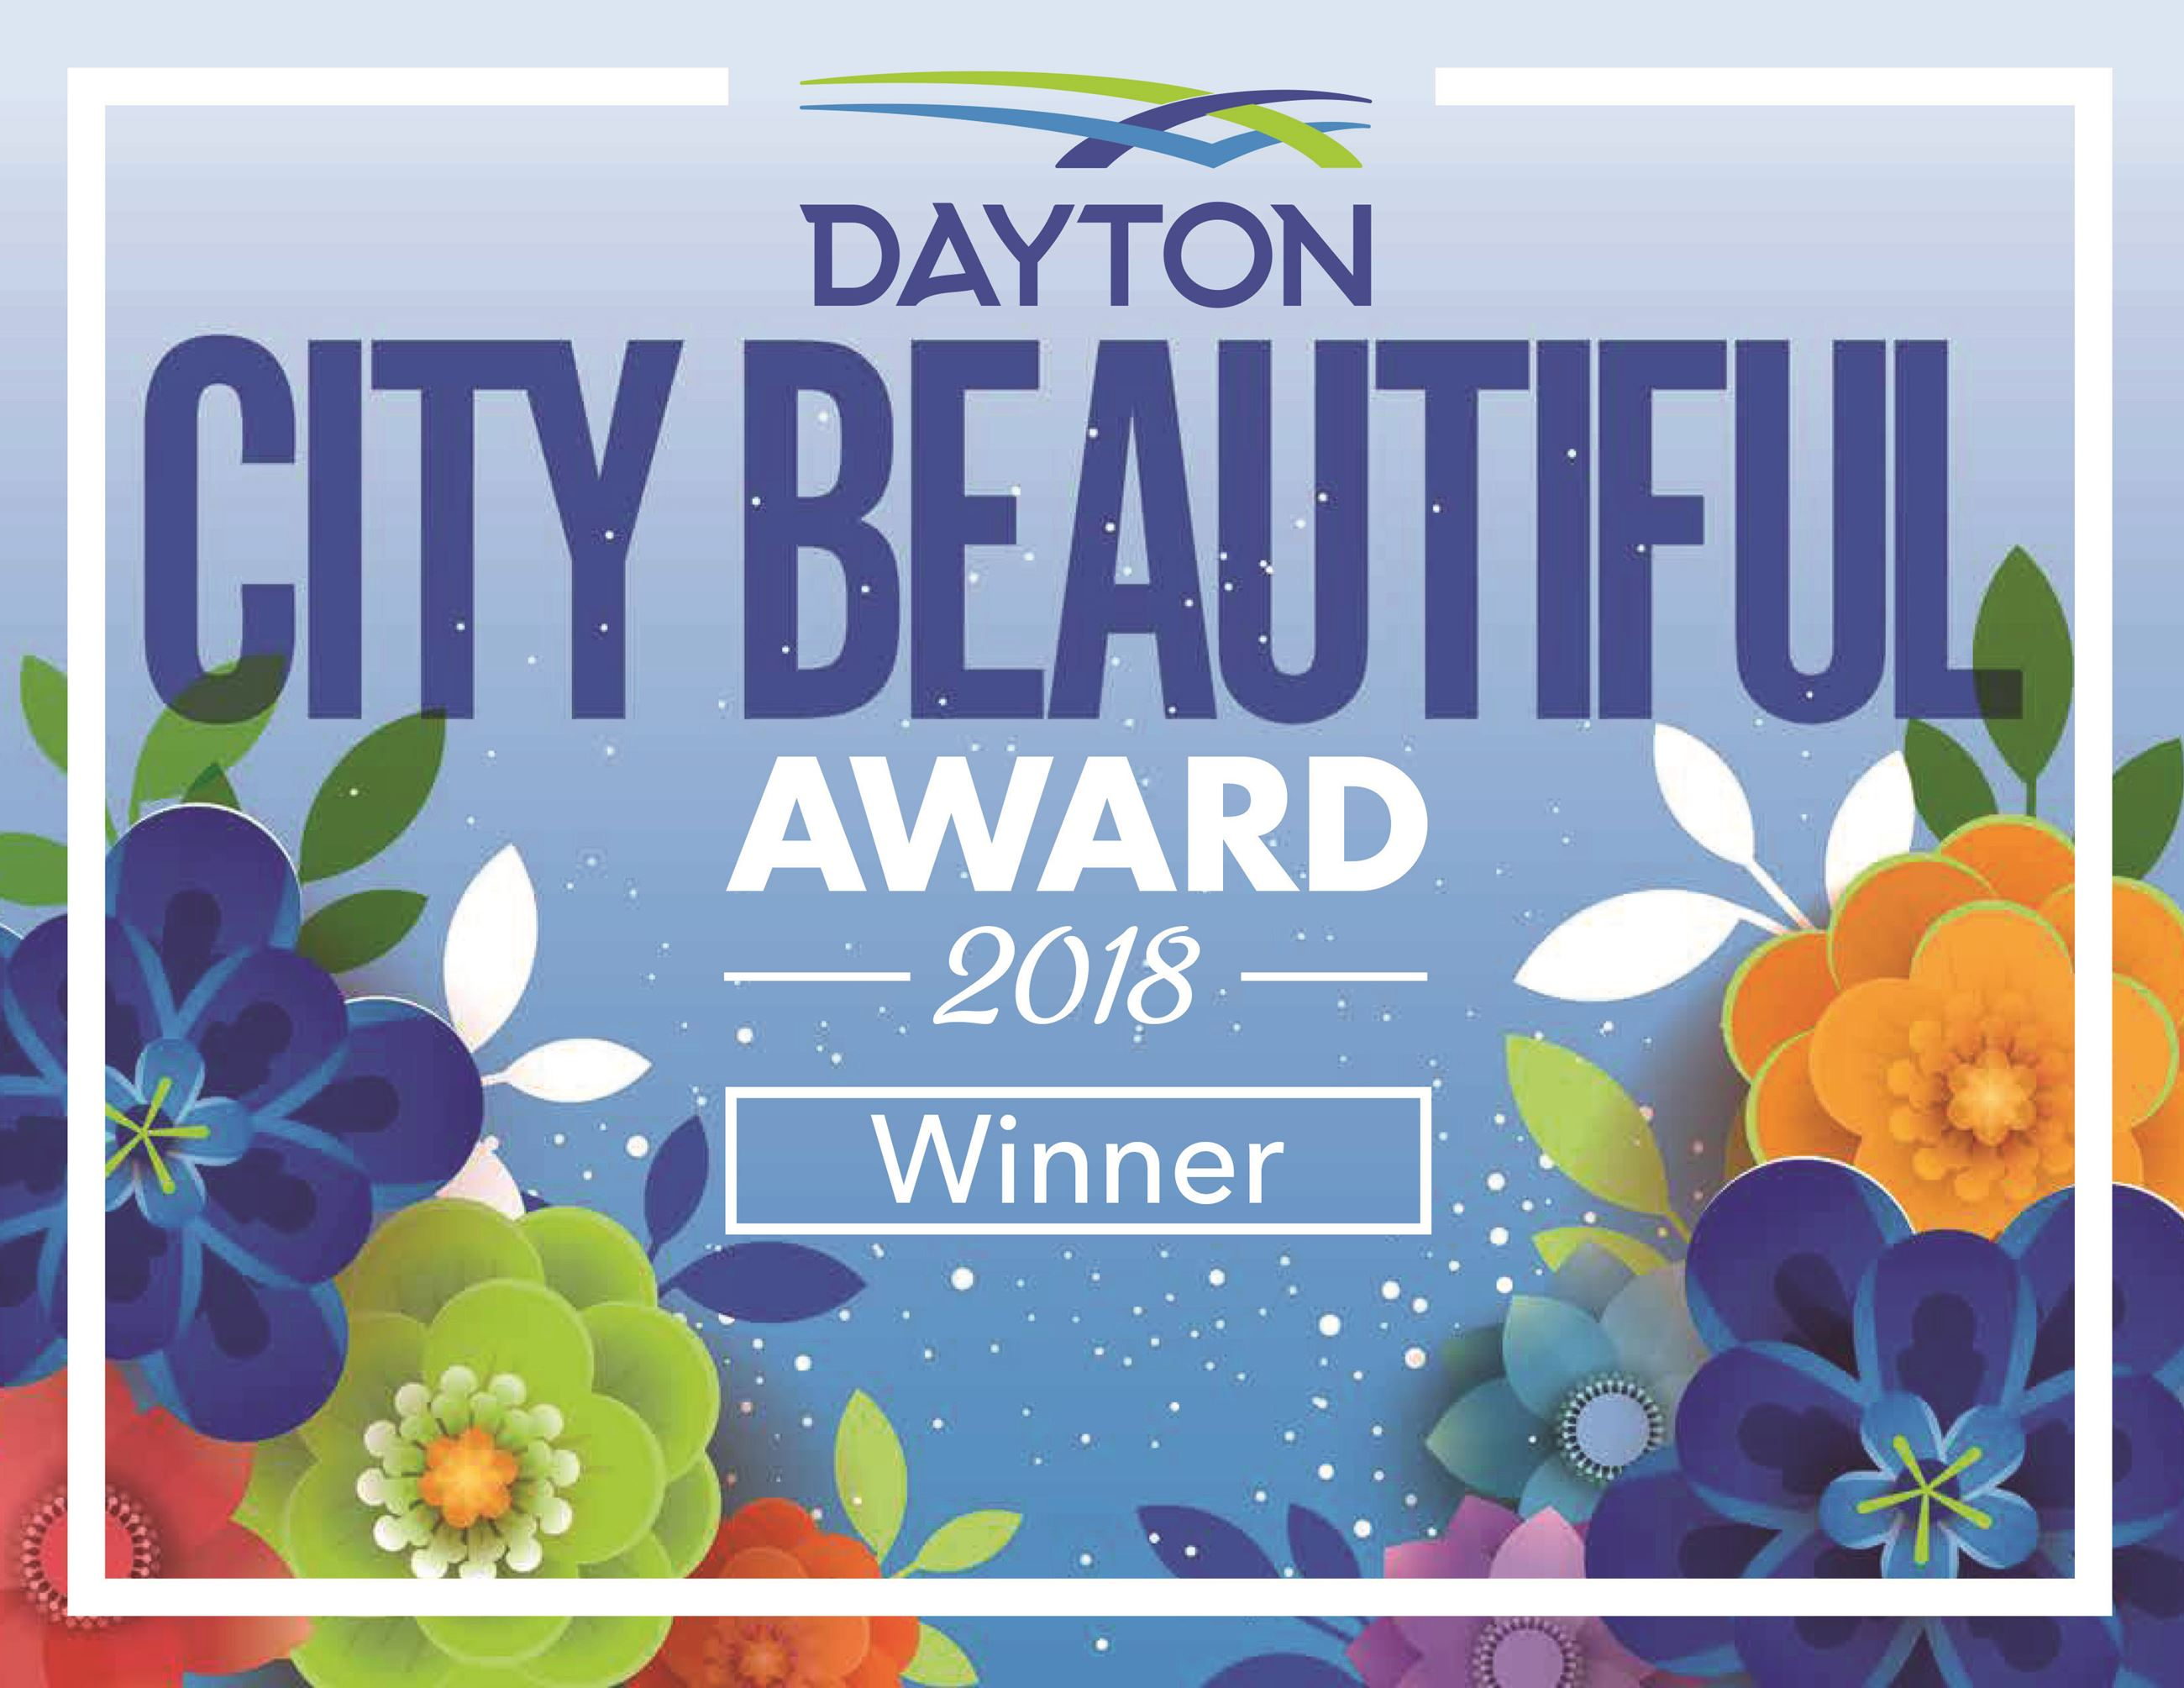 City Beautiful Award Sign 2018 - Winner